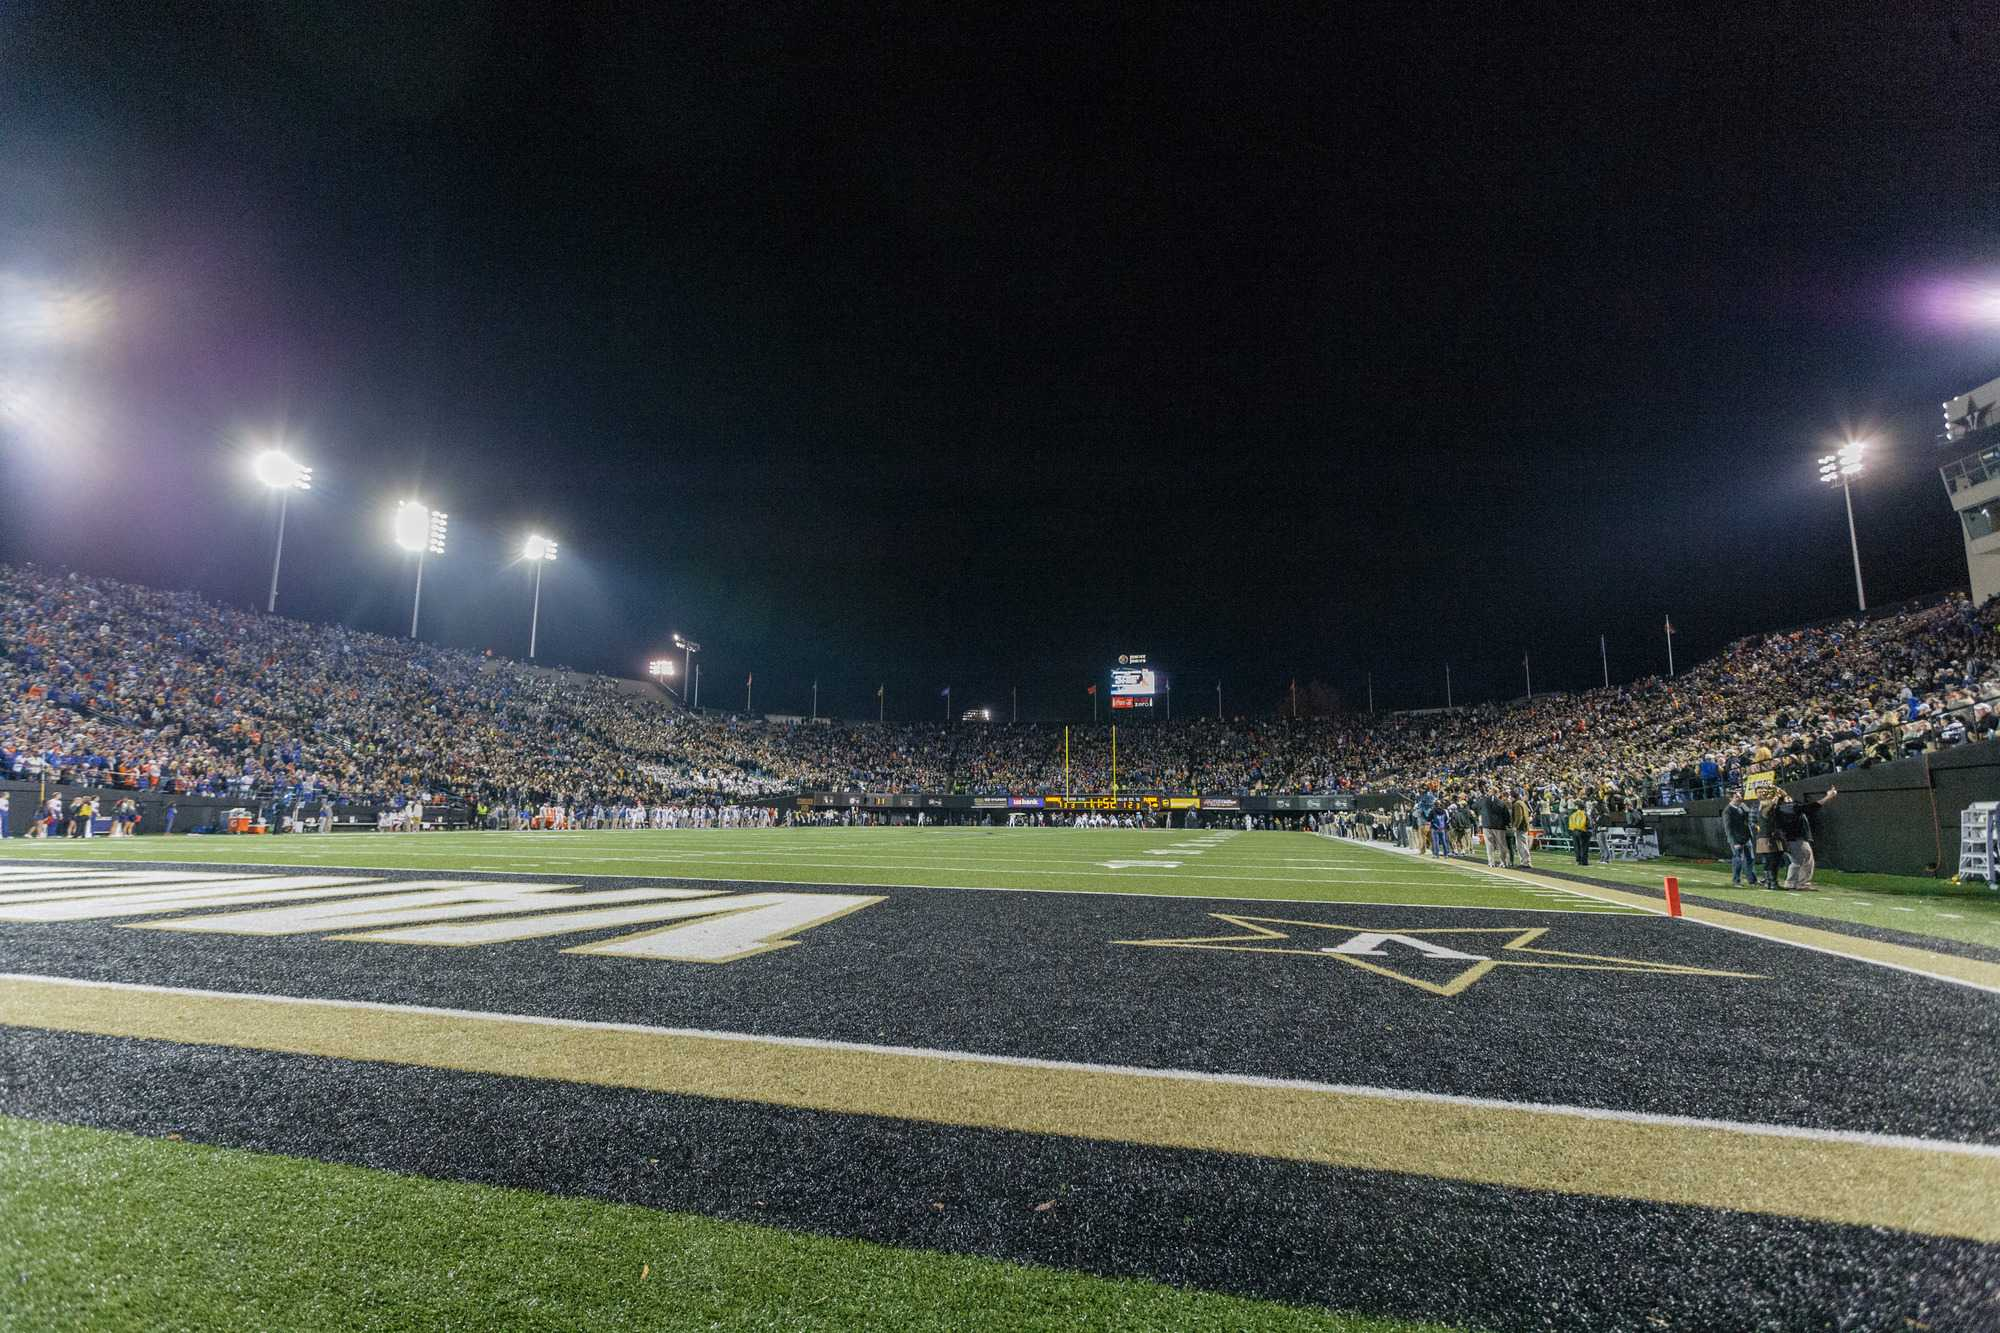 Stadium during Vanderbilt's 34-10 loss against Florida at Vanderbilt Stadium November 8, 2014.